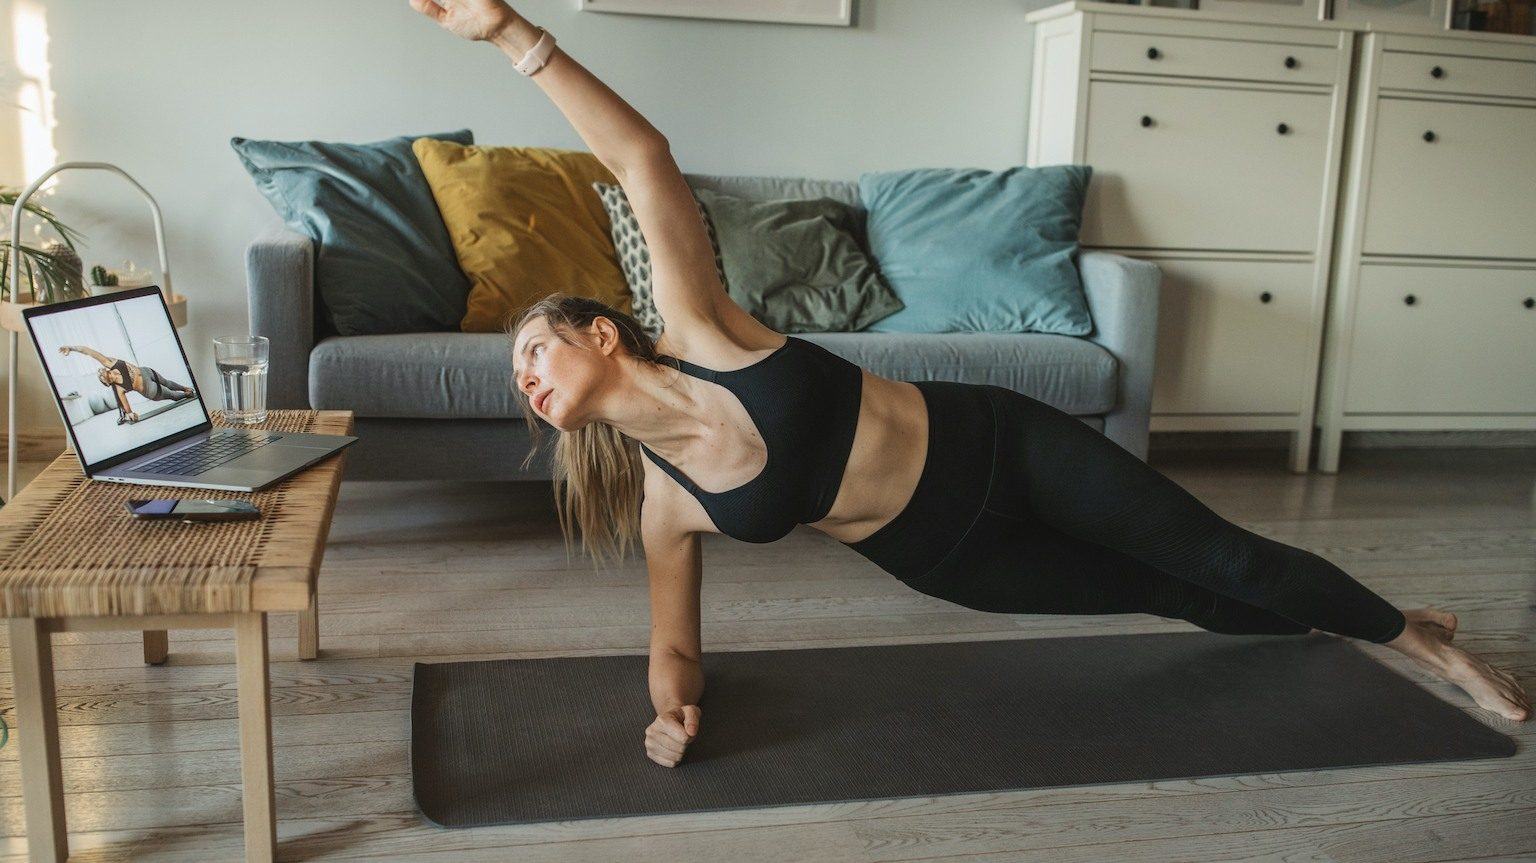 Lady doing pilates at home in lounge room while watching an online workout.